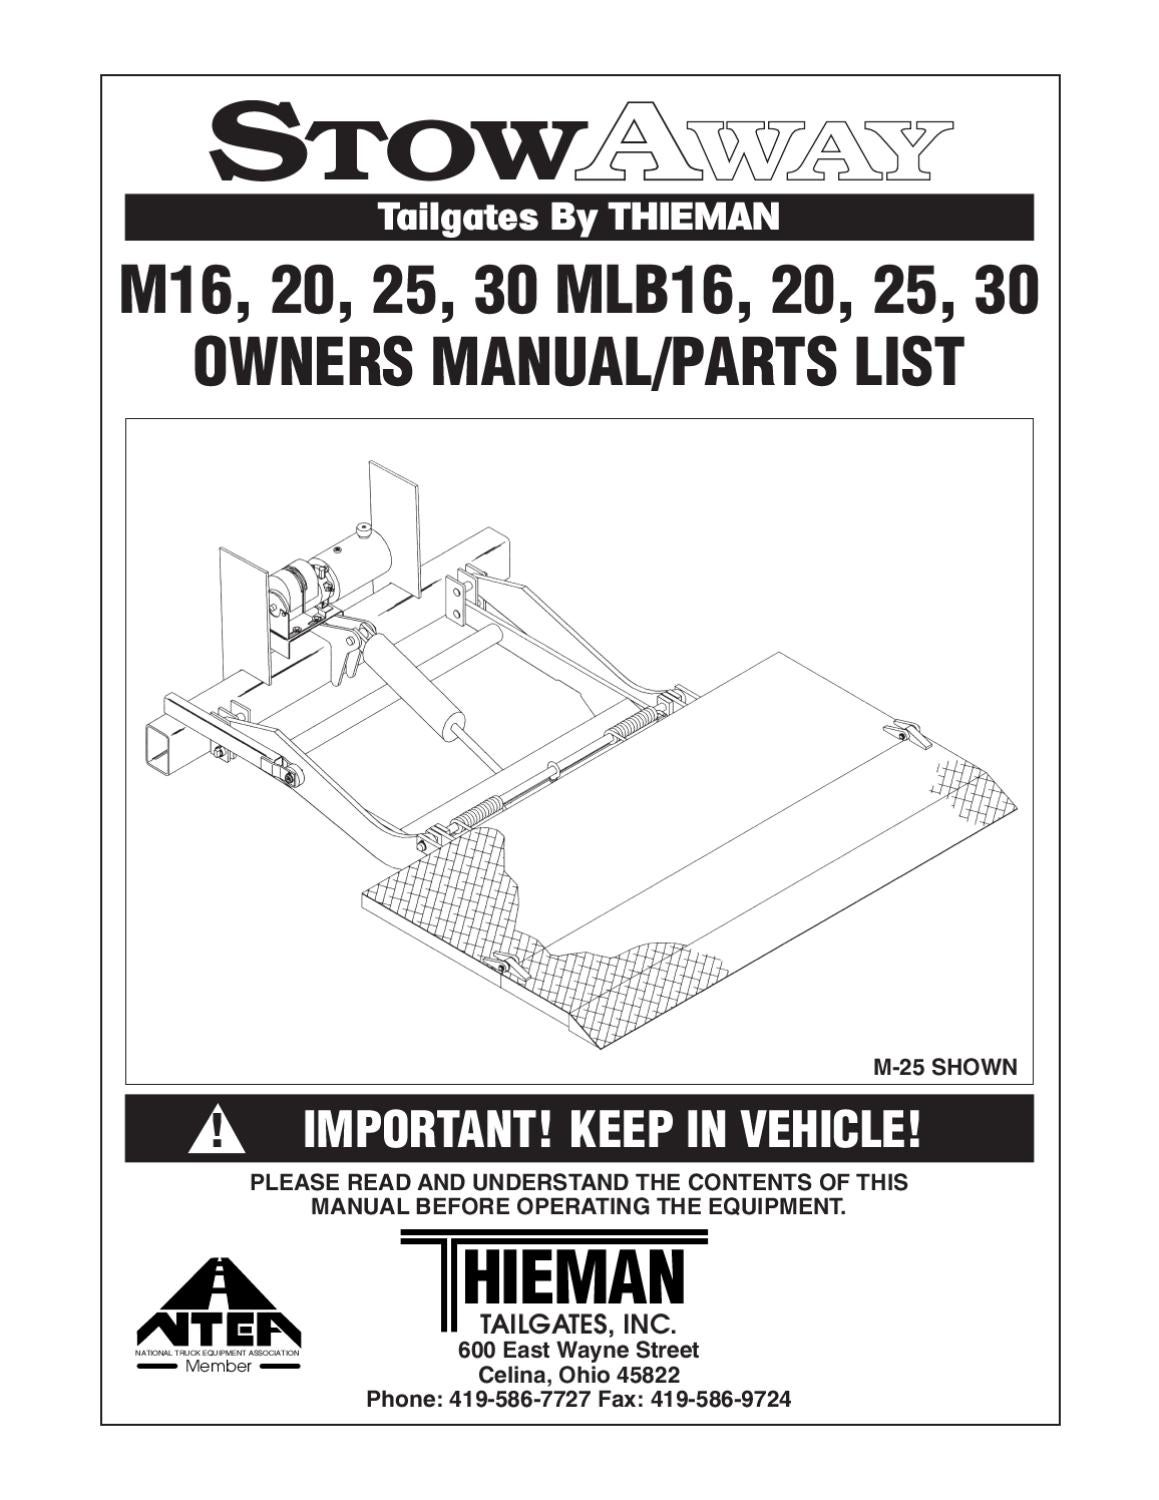 Thieman Liftgate Wiring Diagram Great Design Of Maxon 280252 Harness M Series By The Parts Co Issuu Tommy Gate Tieman Tailgate